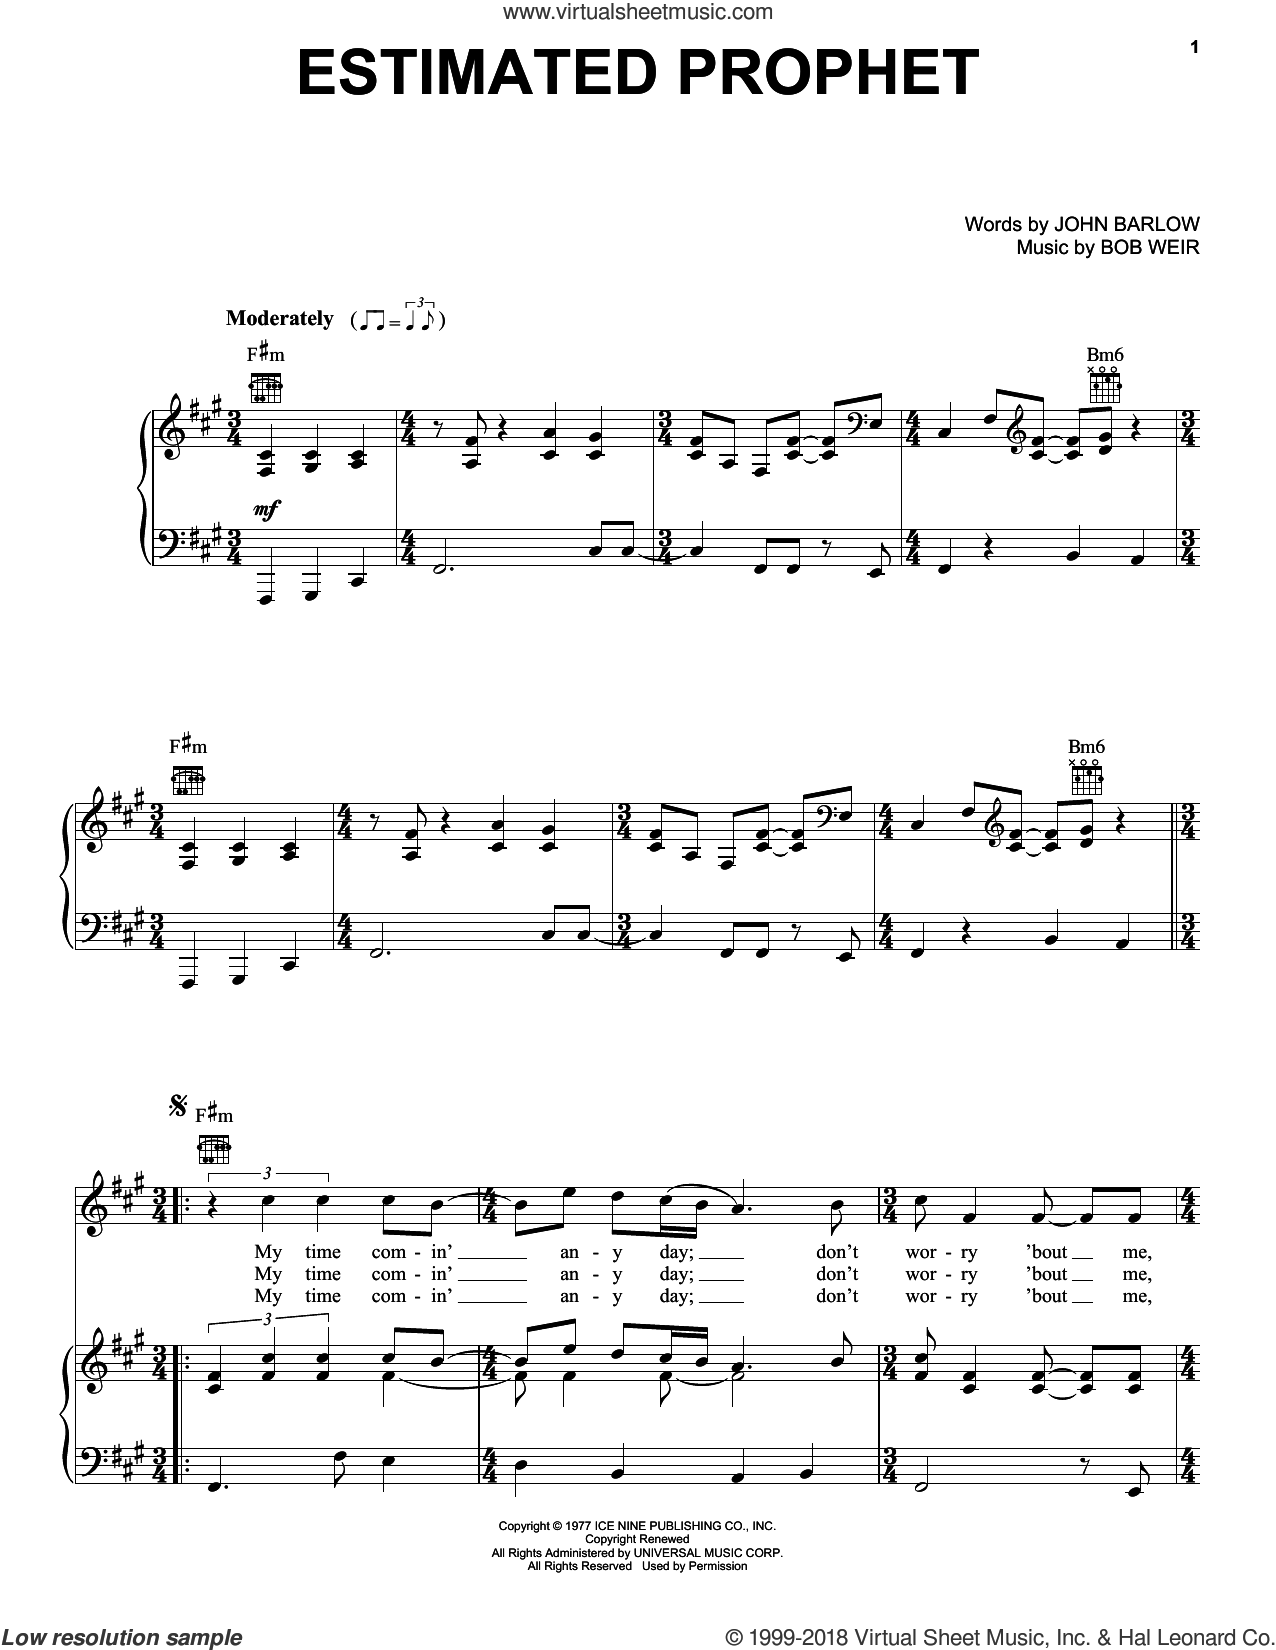 Estimated Prophet sheet music for voice, piano or guitar by John Barlow, Bob Weir and Grateful Dead. Score Image Preview.